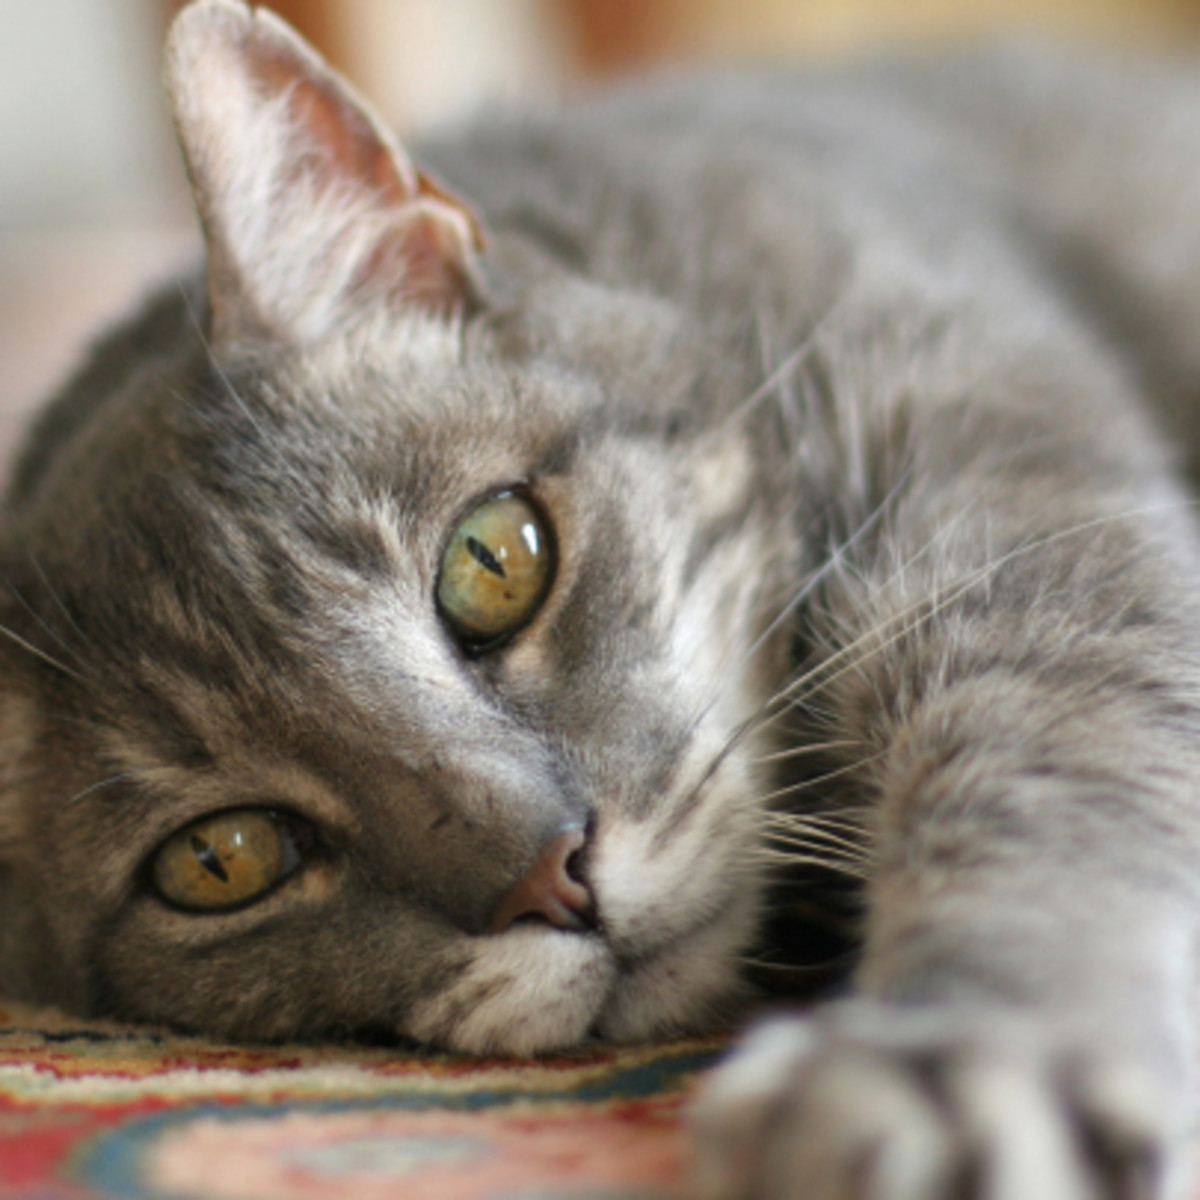 Although there is a FIV vaccine available, it is not 100% effective. Be sure to take other preventative measures.